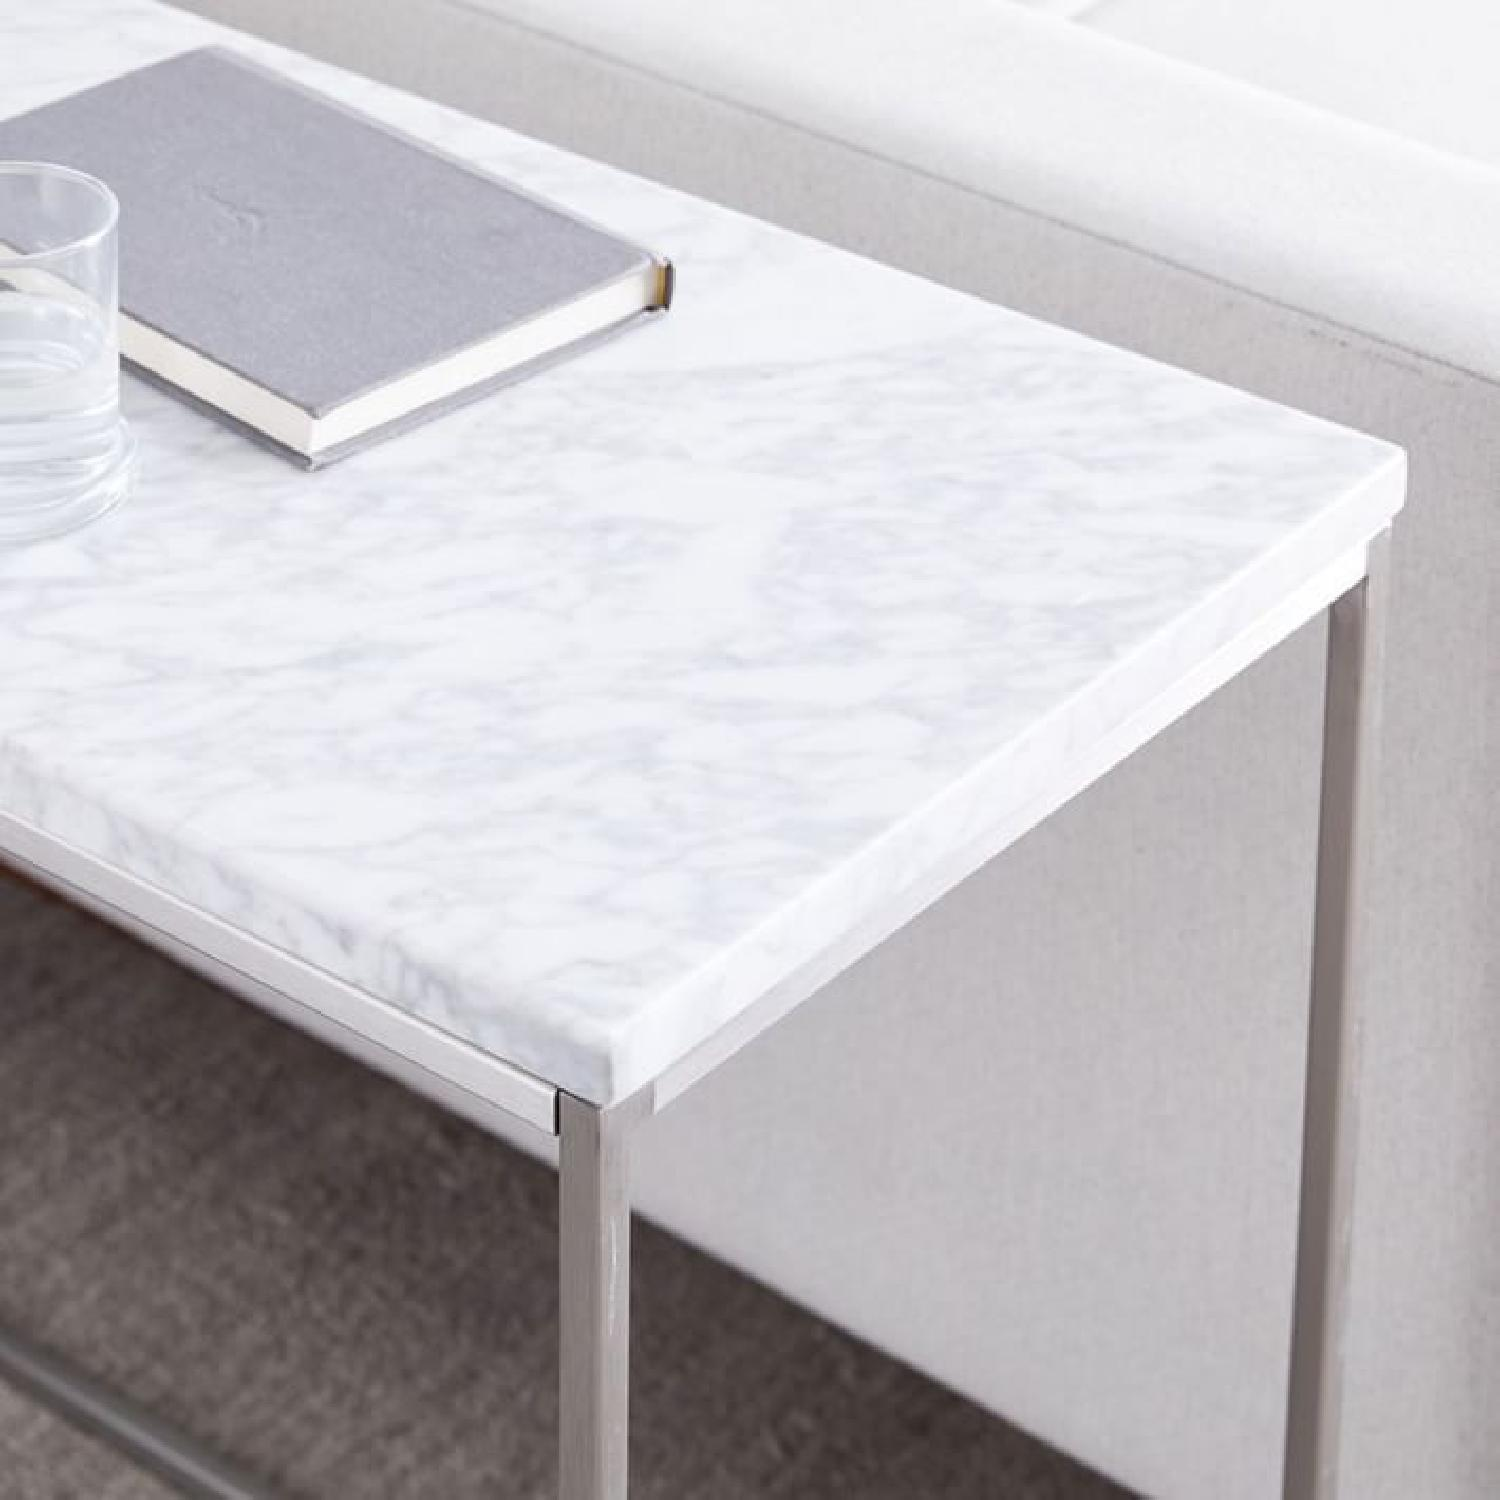 West Elm Marble Streamline Side Table in Satin Chrome - image-3